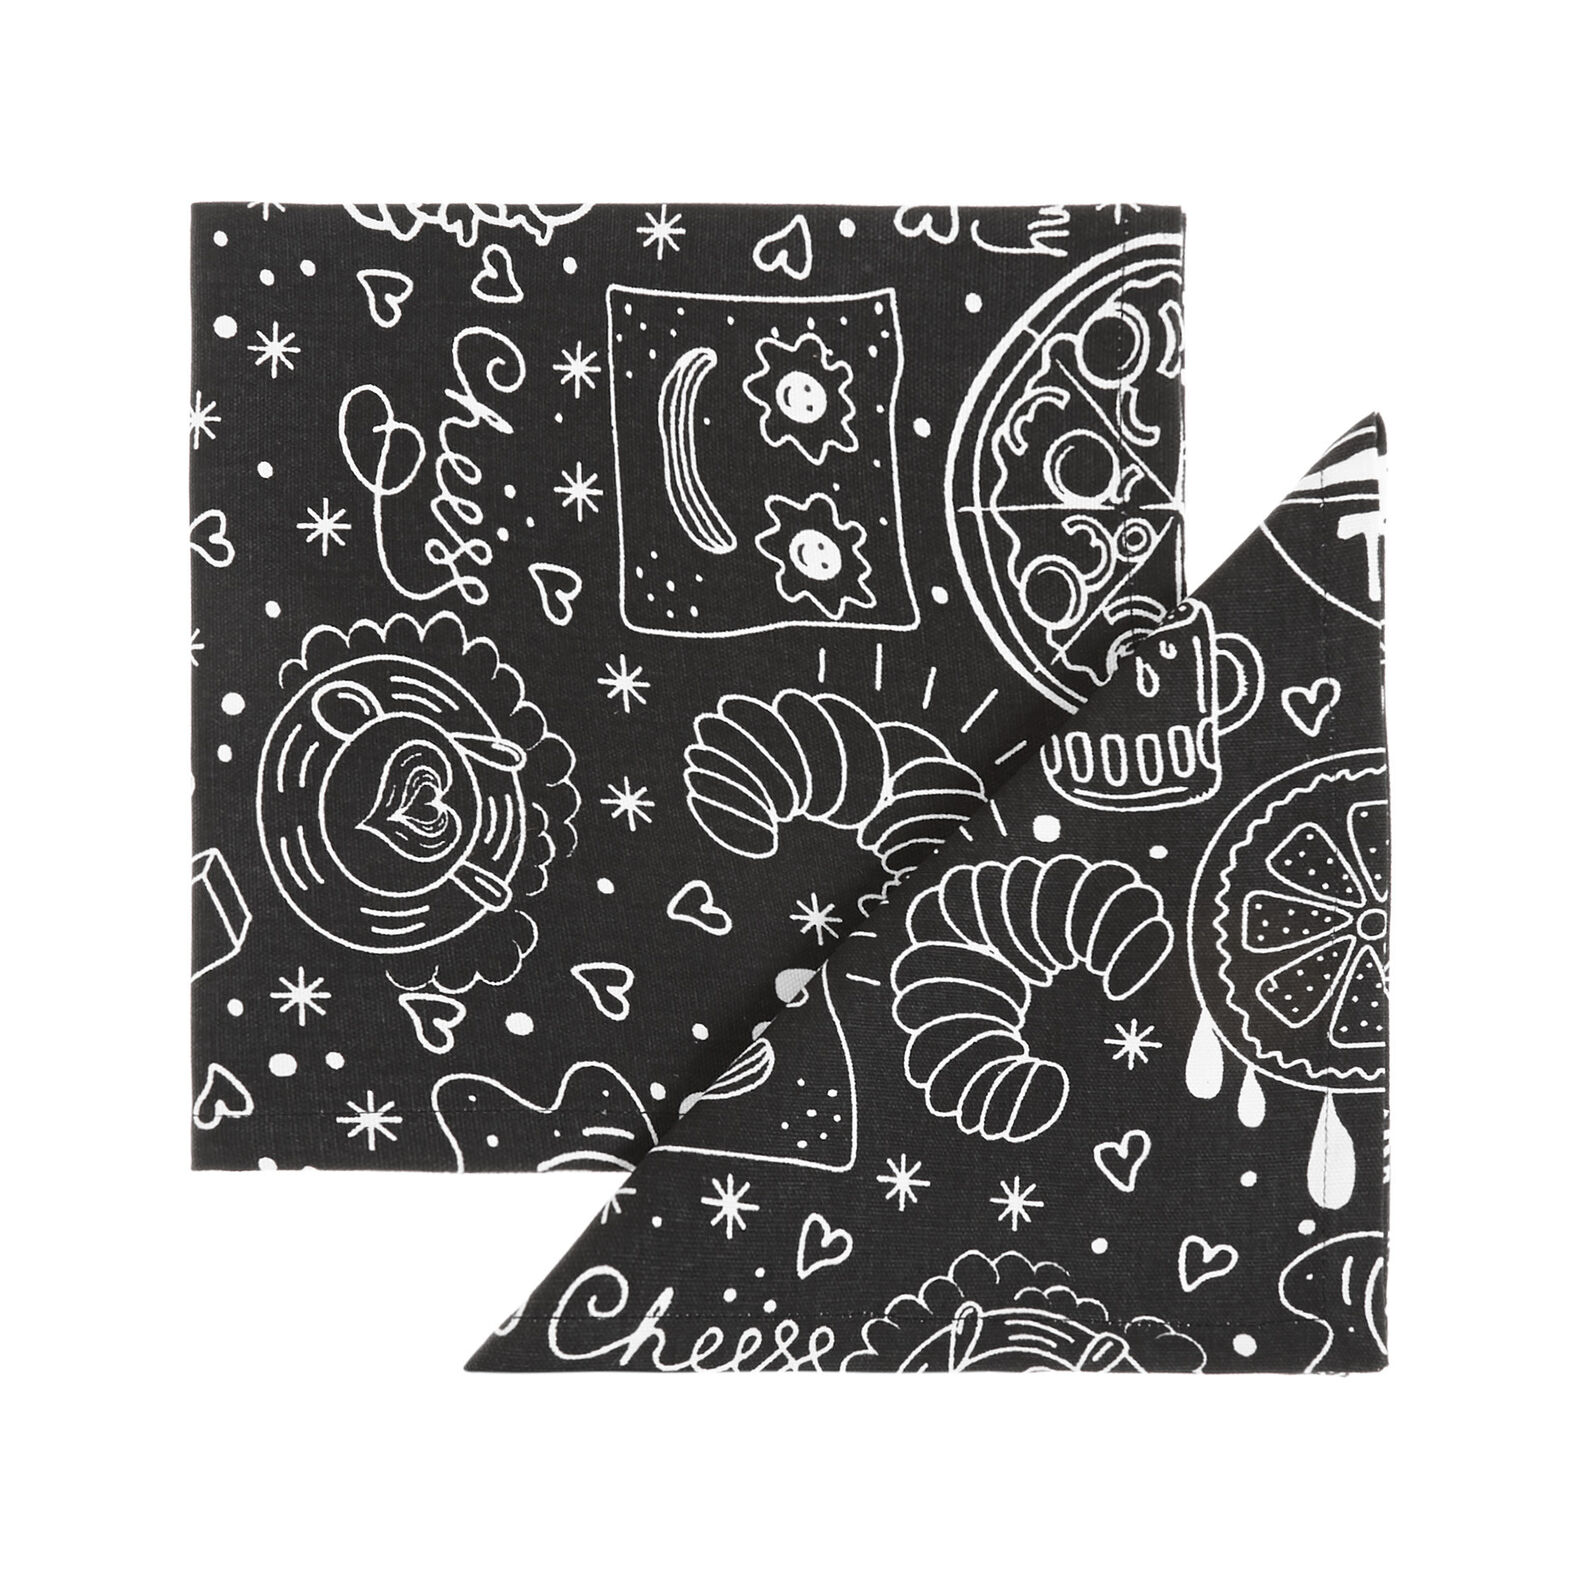 2-pack napkins in 100% cotton with food print